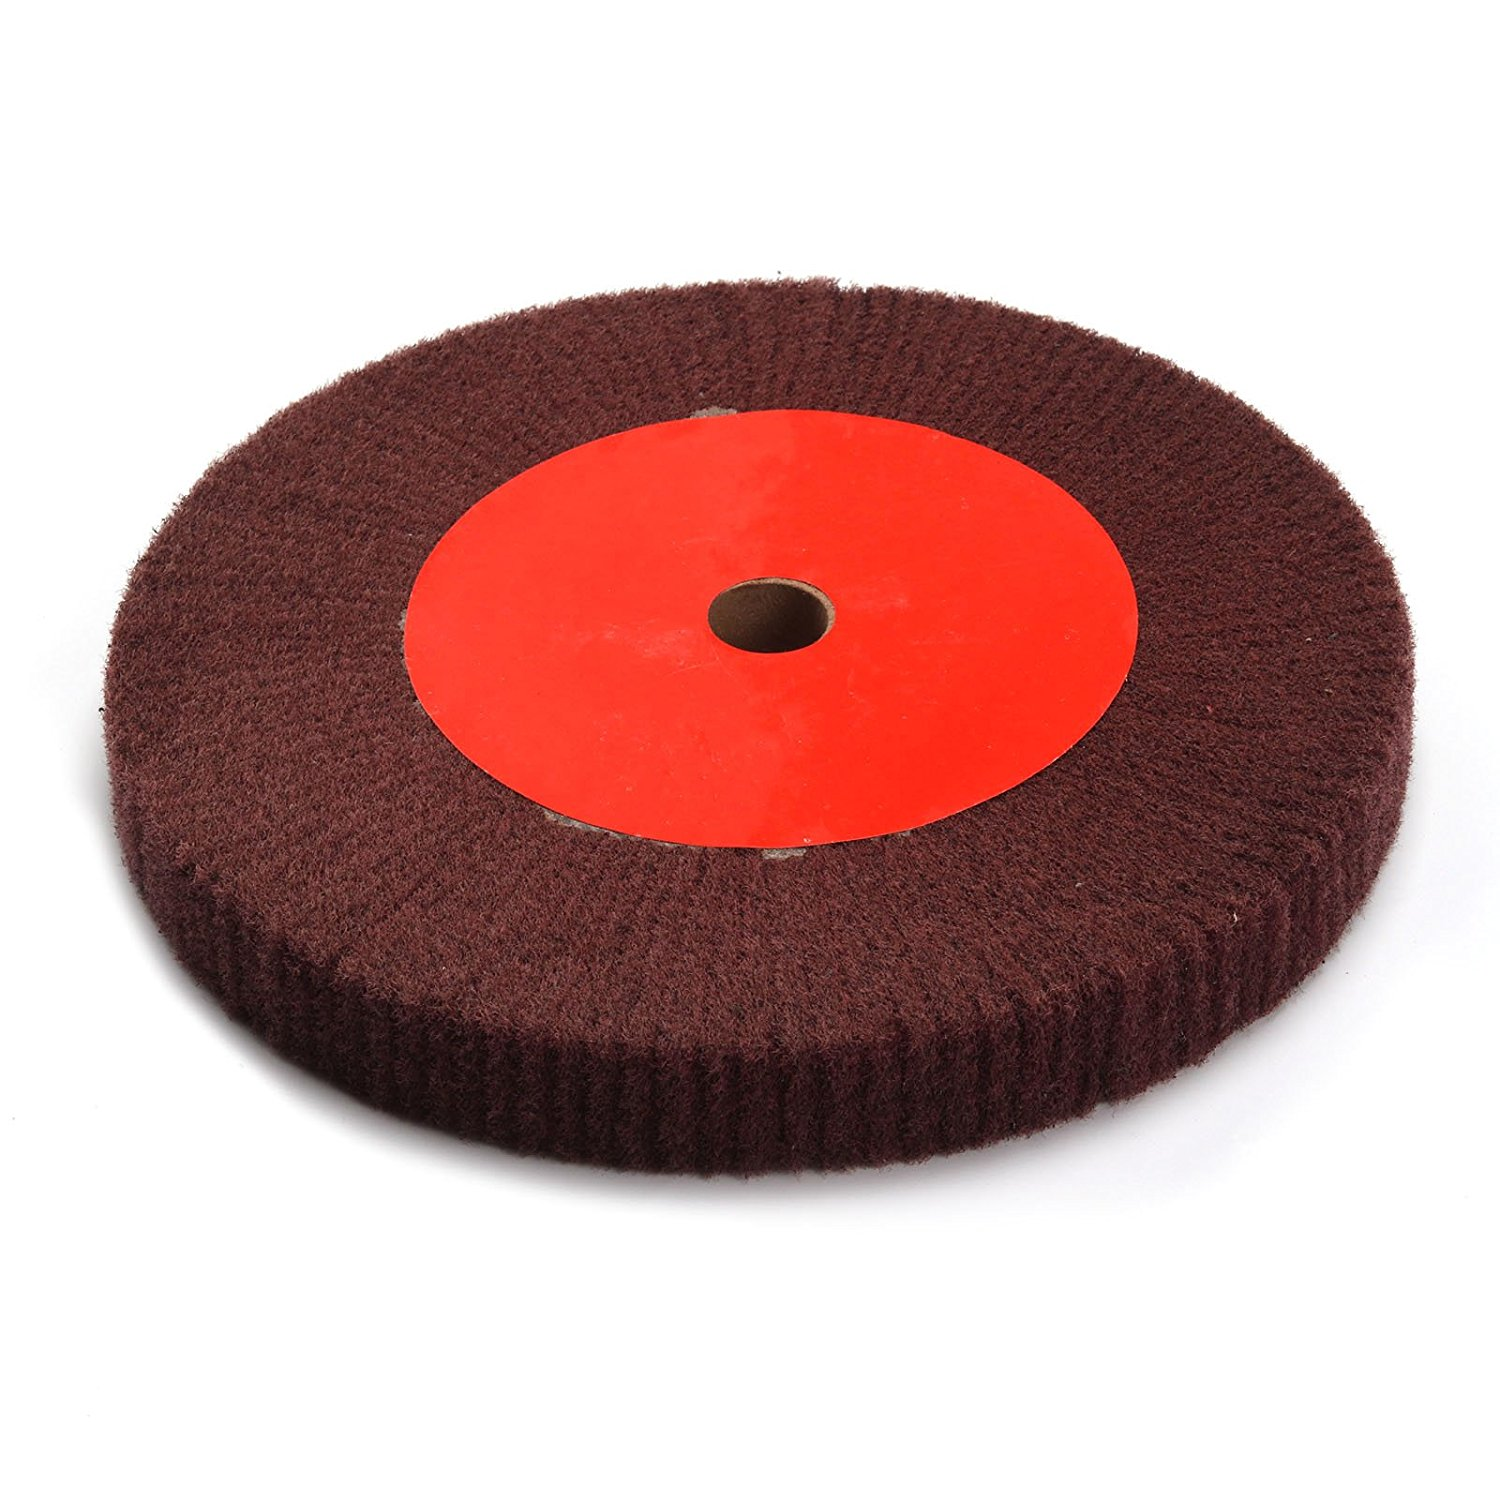 Fiber Polishing Buffing Wheel 320# Grit Nylon Abrasive 300mm Dia 25mm 5P Hardnes